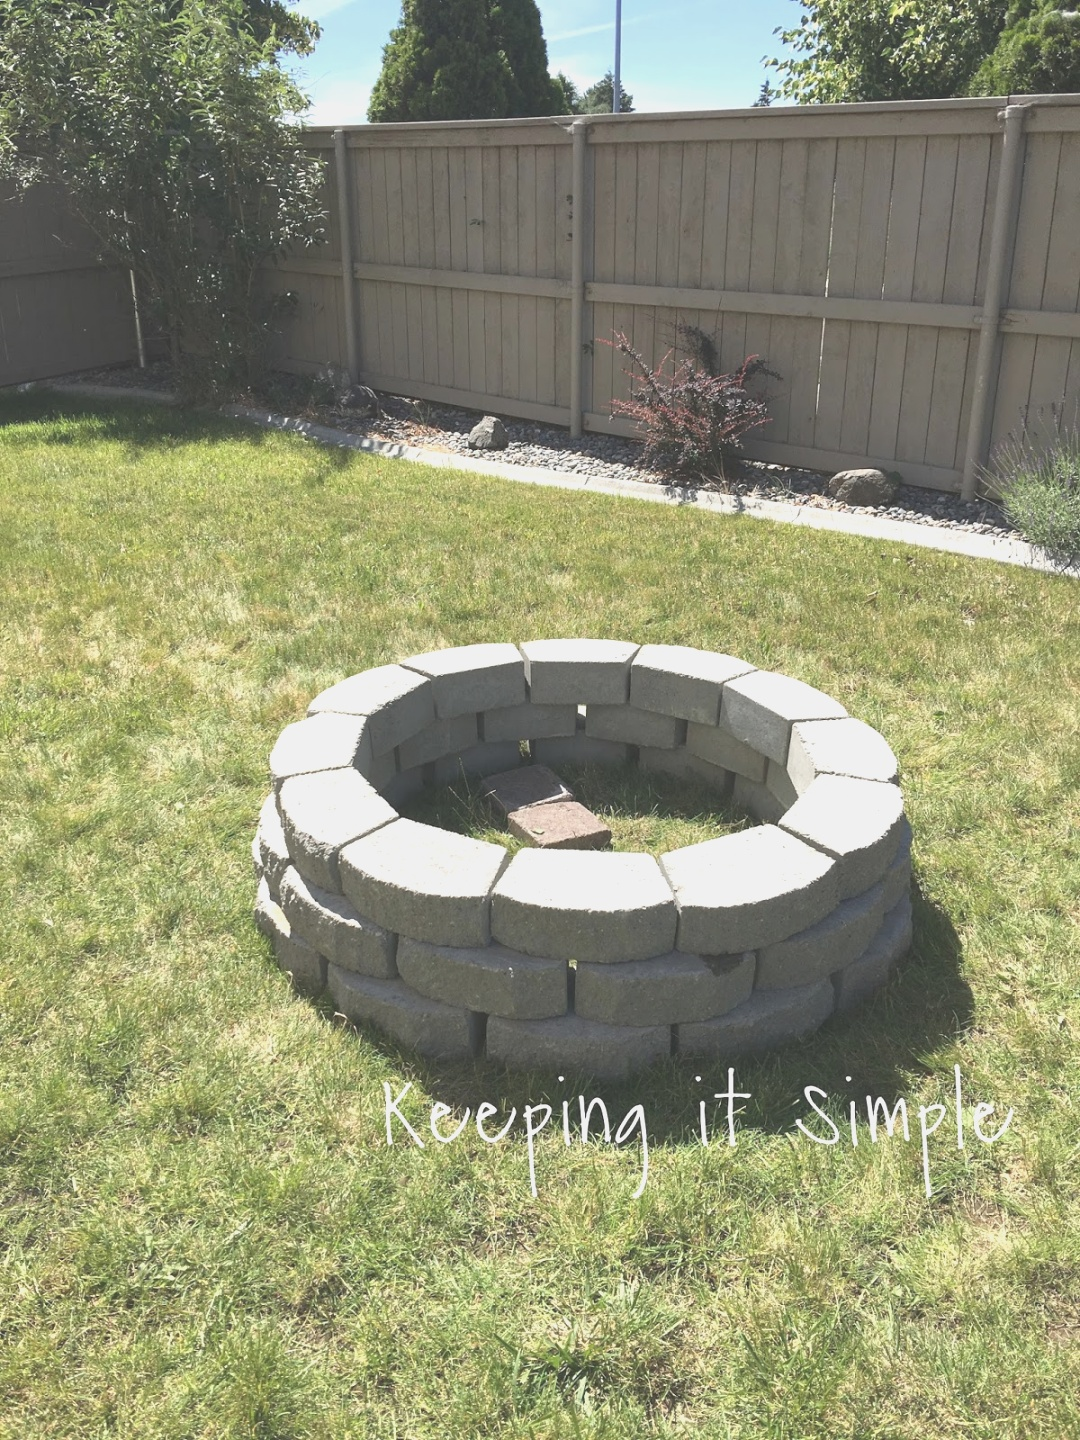 diy fire pit | How to Build a DIY Fire Pit for Only $60 - Keeping it Simple Crafts | diy fire pit